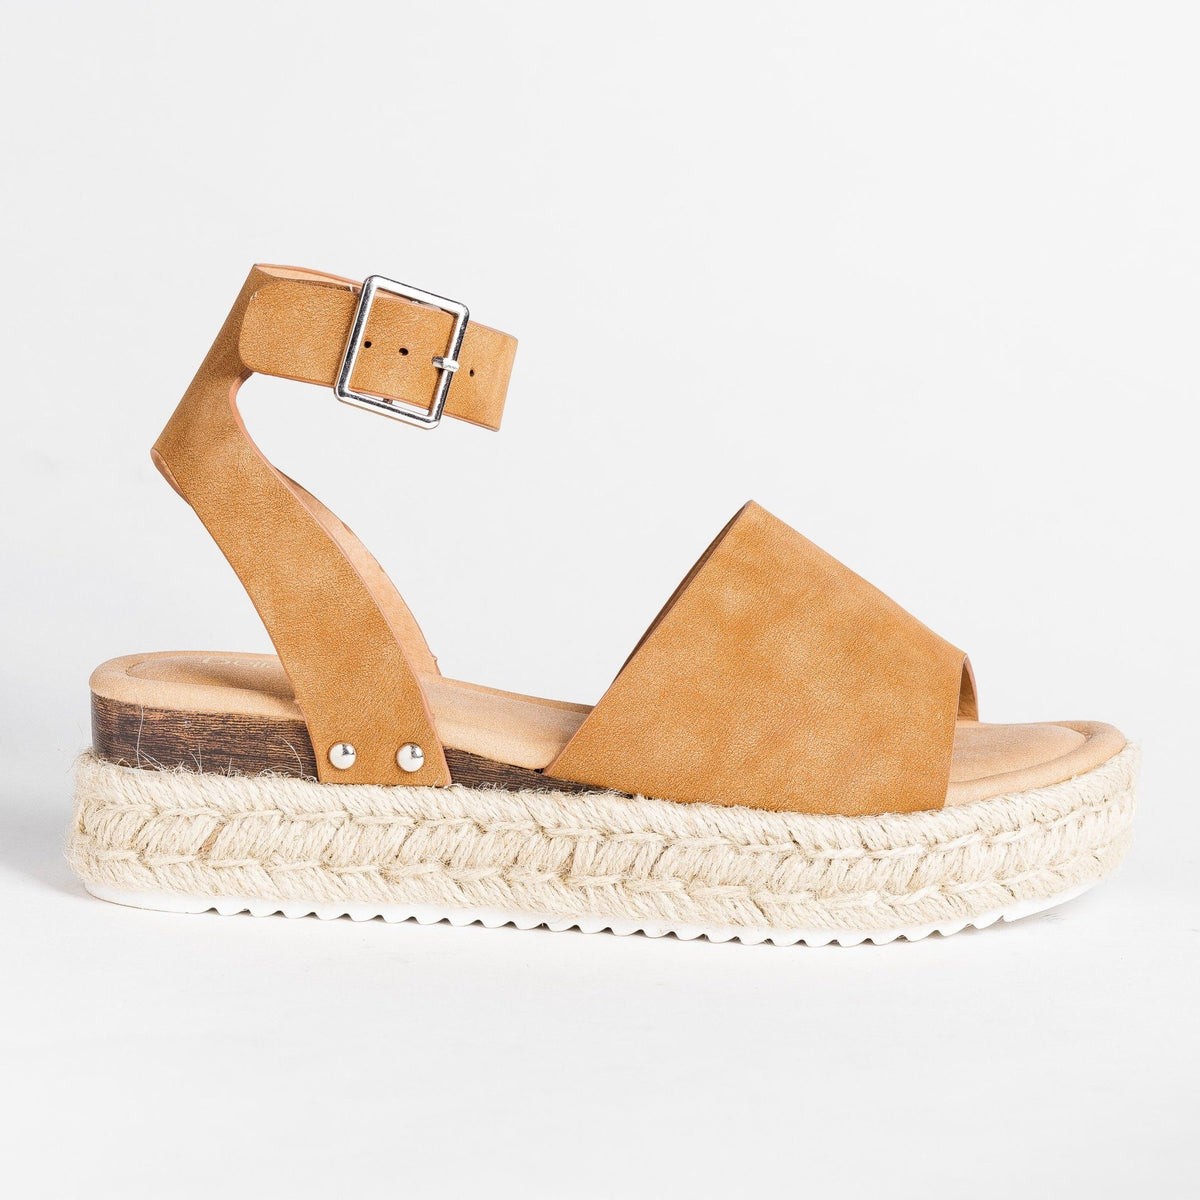 b88a022b1ccf Fashionista Espadrille Sandals - Bella Marie Shoes Bessy-1 – Shoetopia